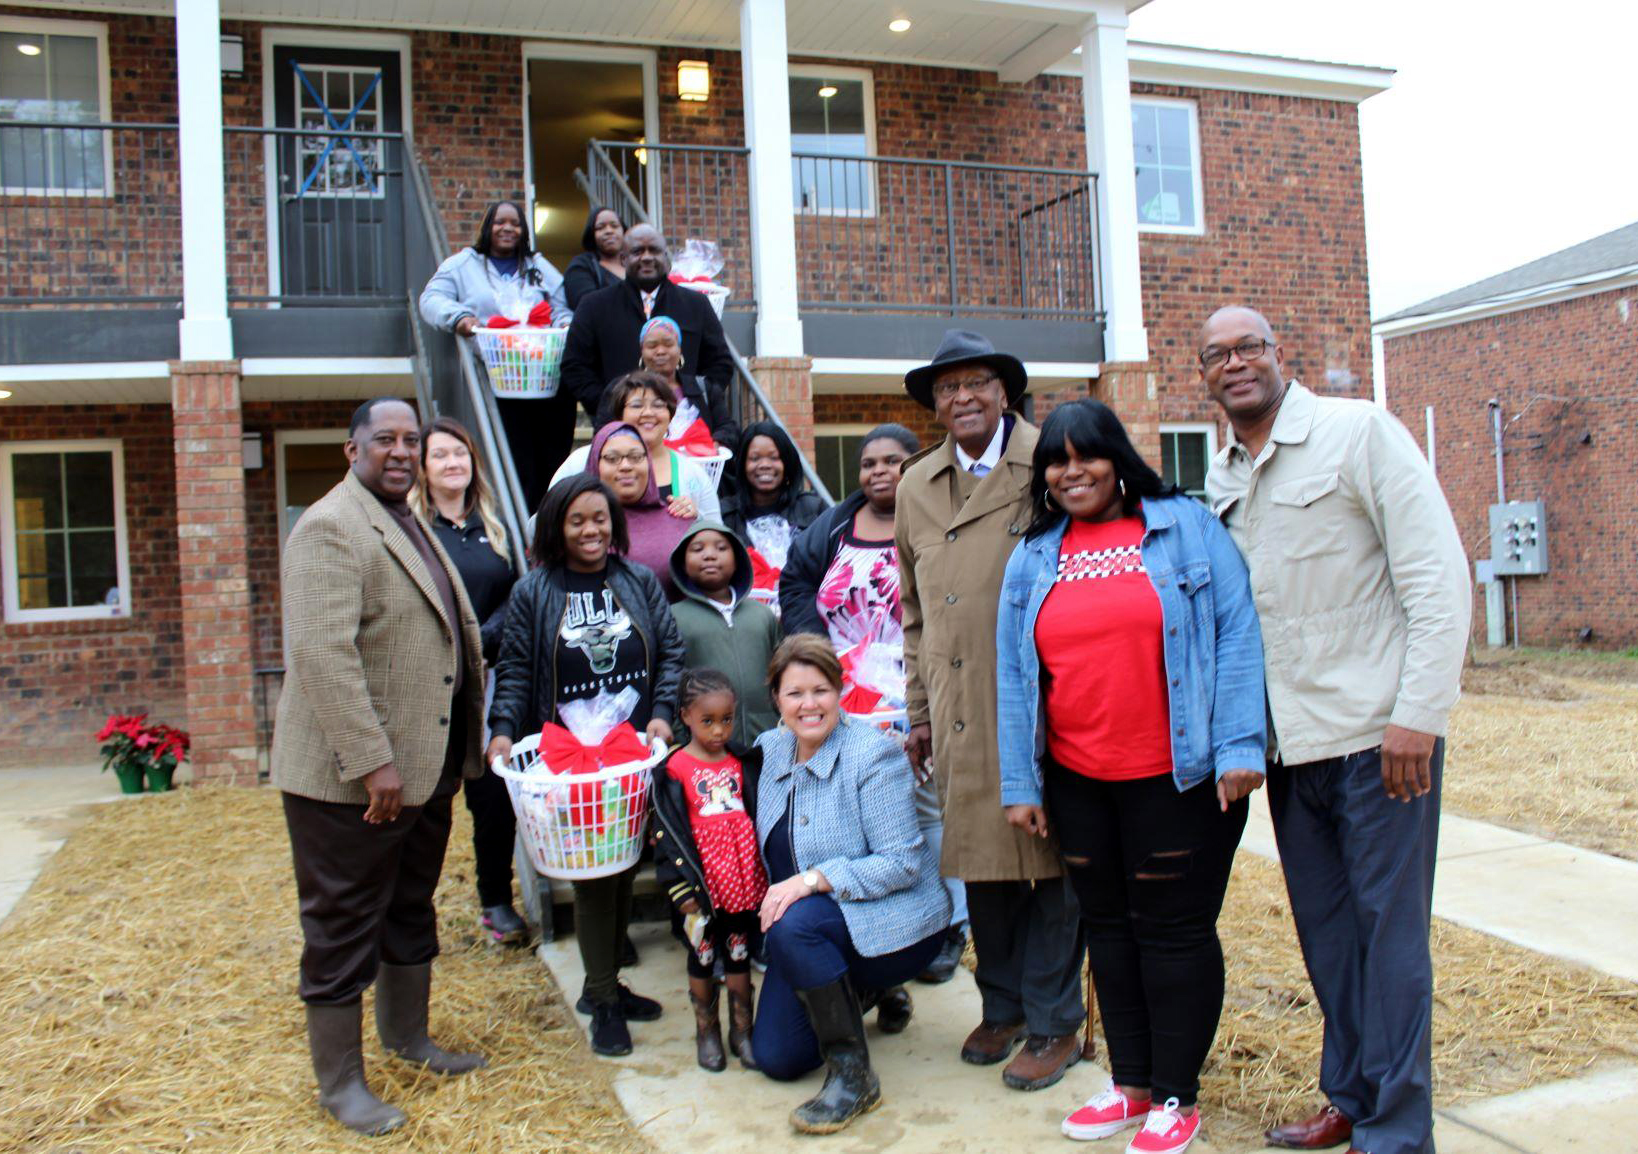 BGC Advantage Joins Forces with Community Partners to Welcome Families into Their New Homes Just in Time for the Holidays